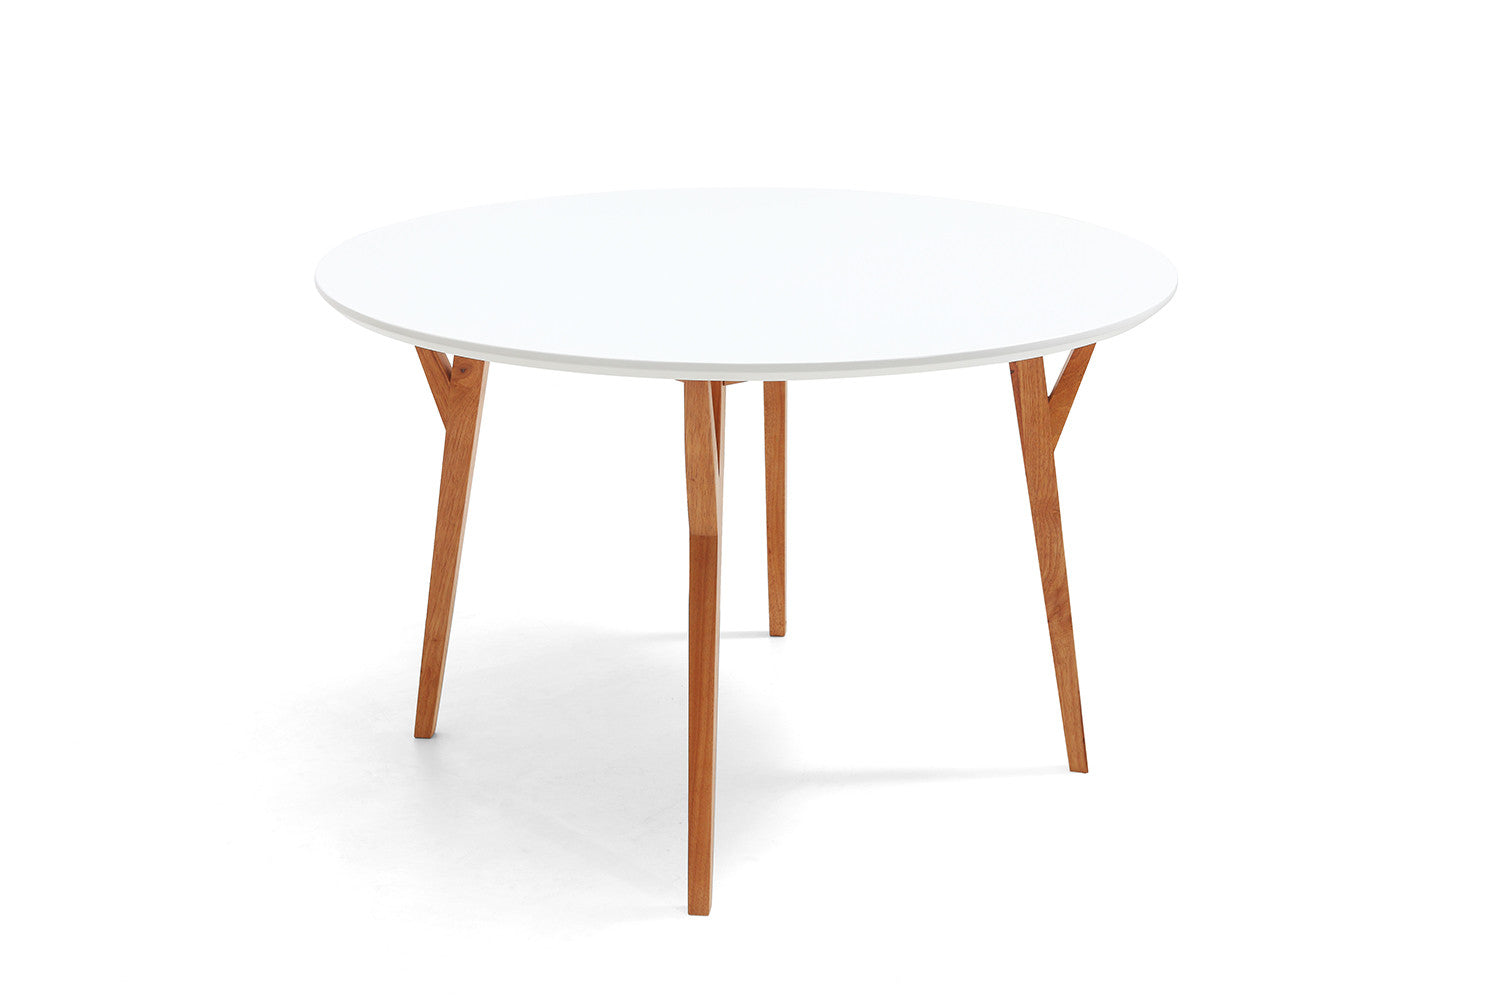 Table de salle manger ronde design scandinave moesa for Table a manger a rallonge design